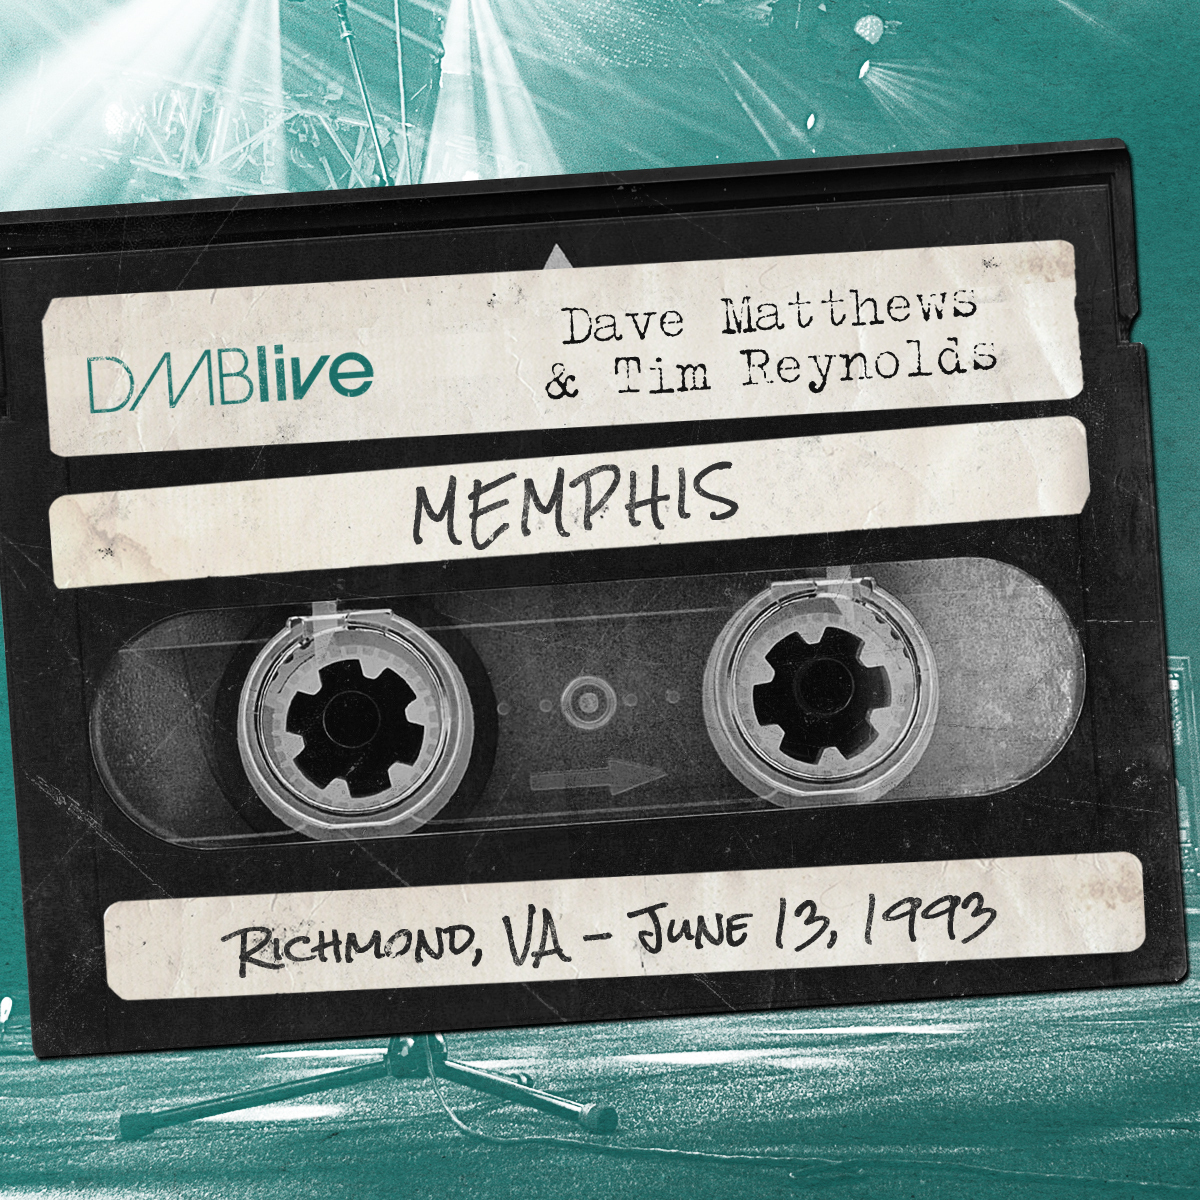 Dave Matthews & Tim Reynolds Memphis, Richmond, VA  6/13/1993